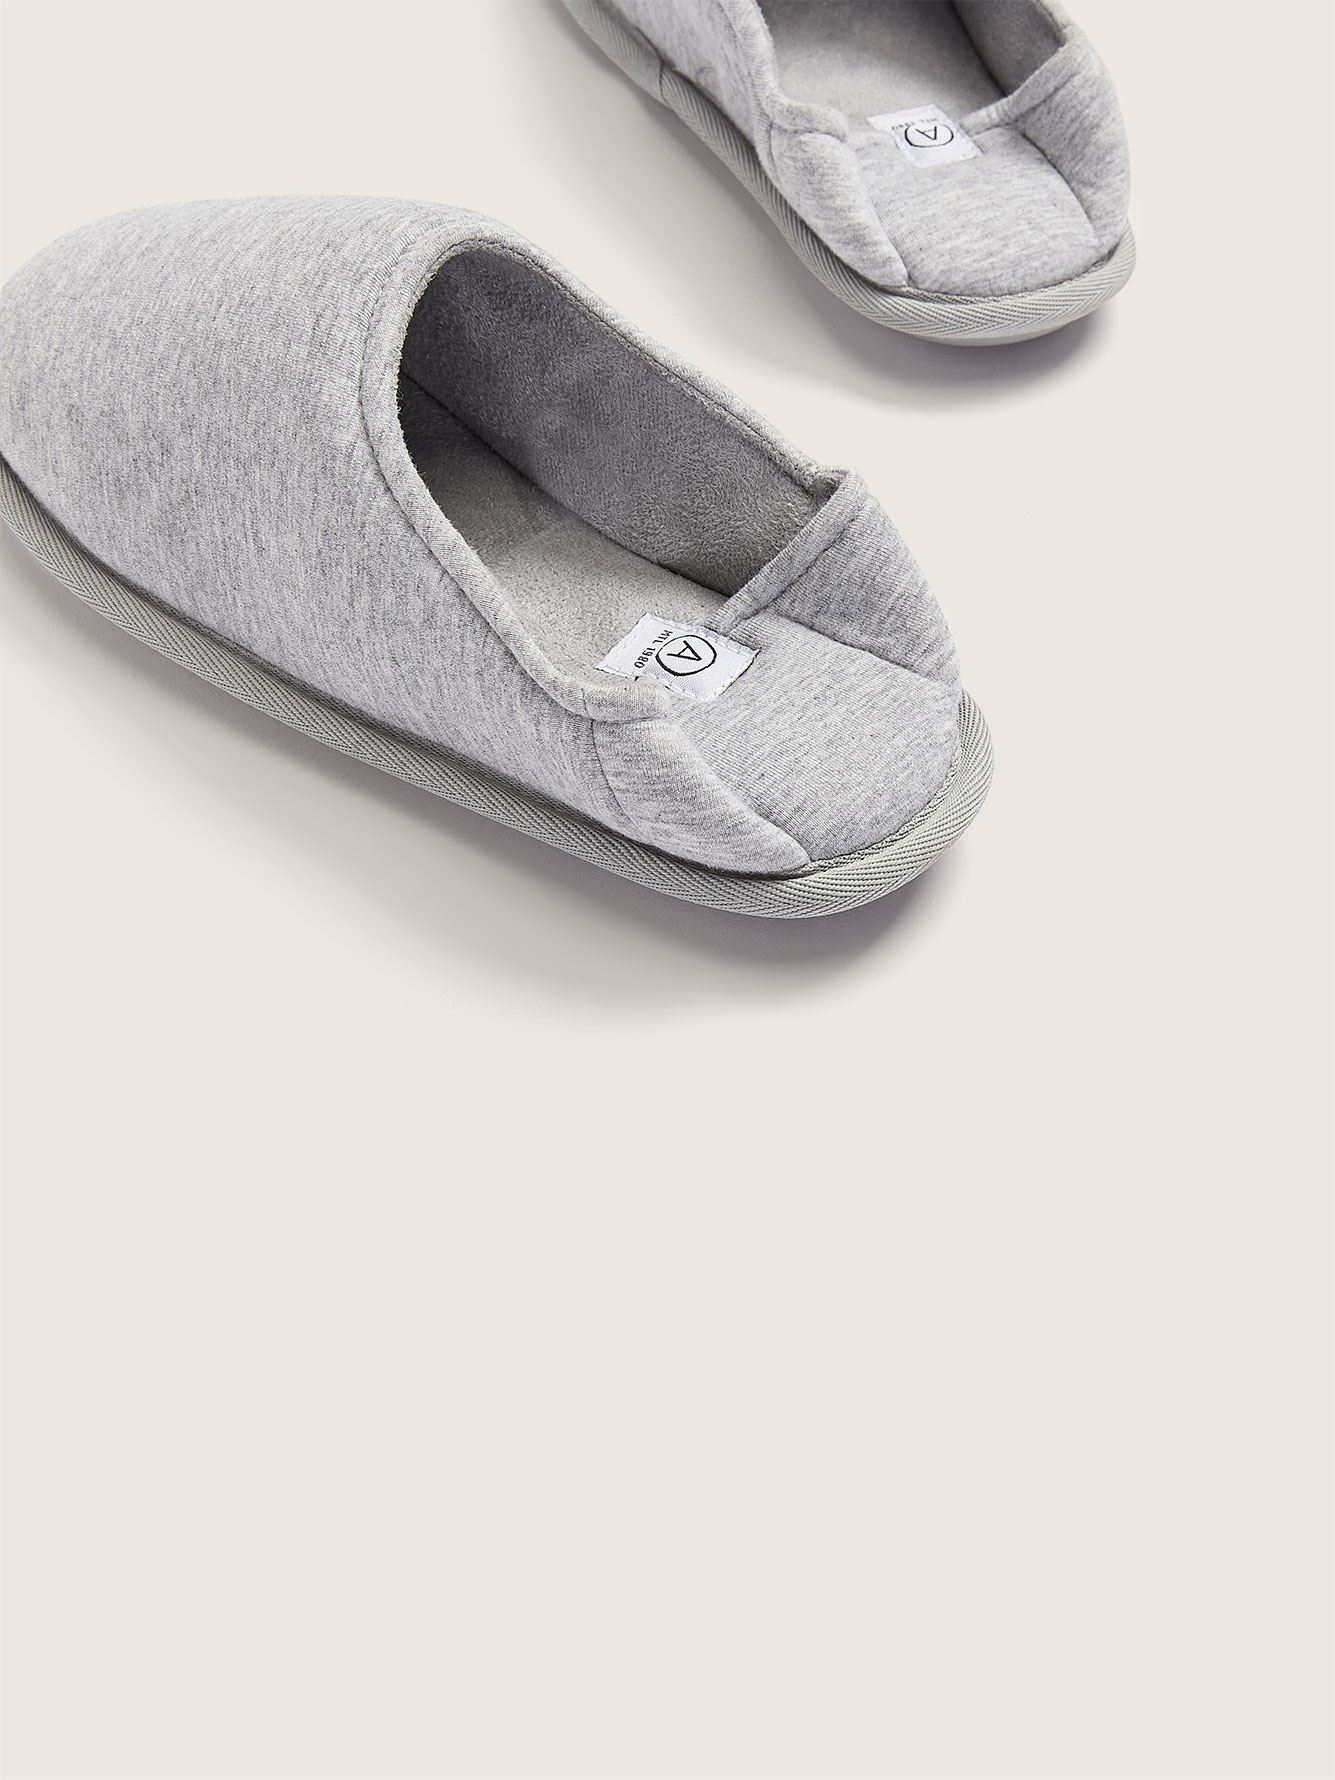 Heathered Slippers - Addition Elle